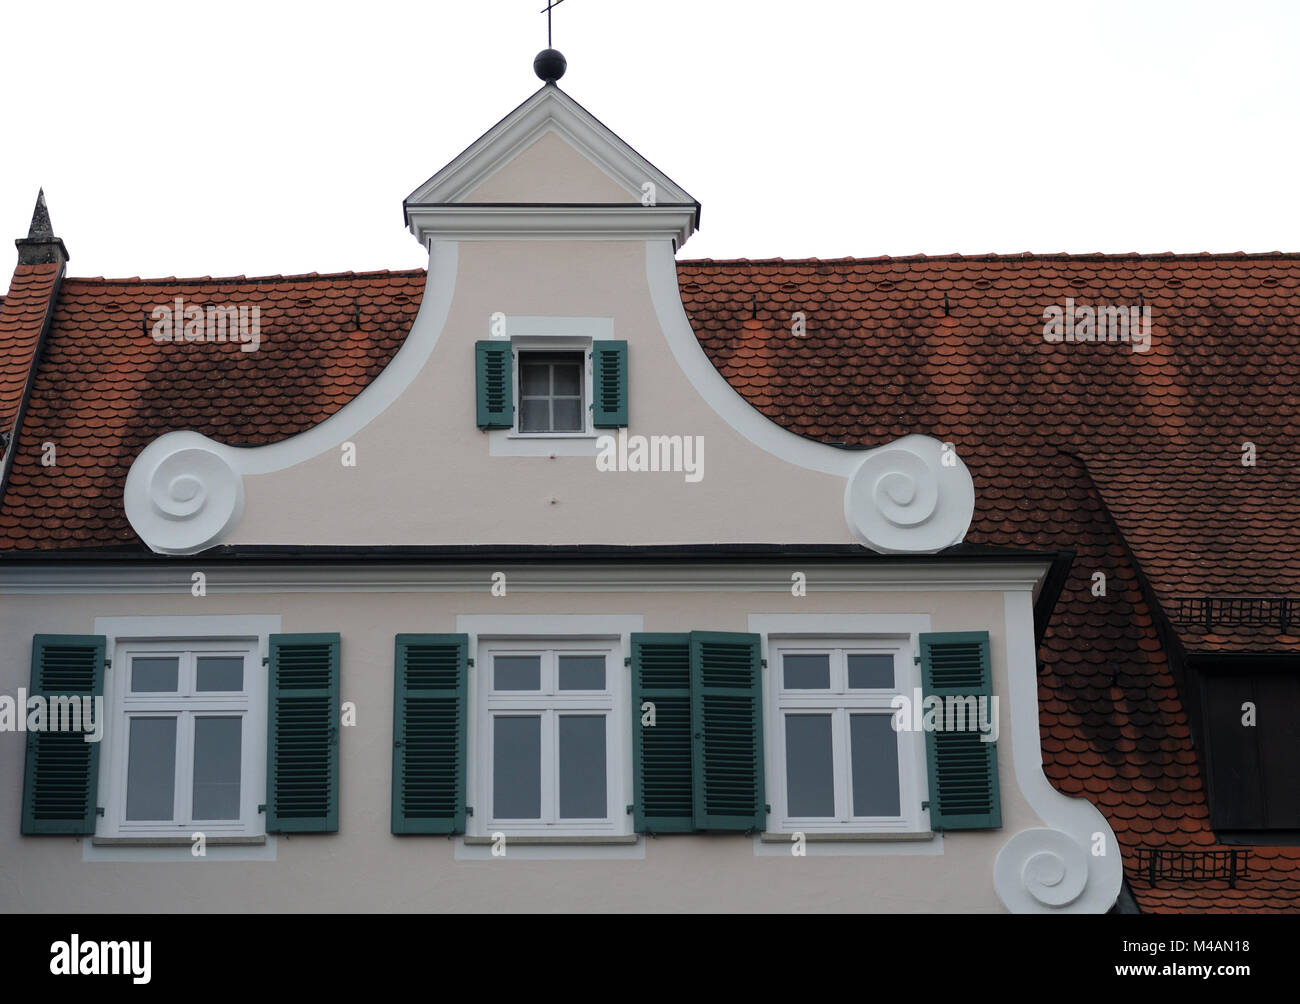 dutch gable at historic building - Stock Image